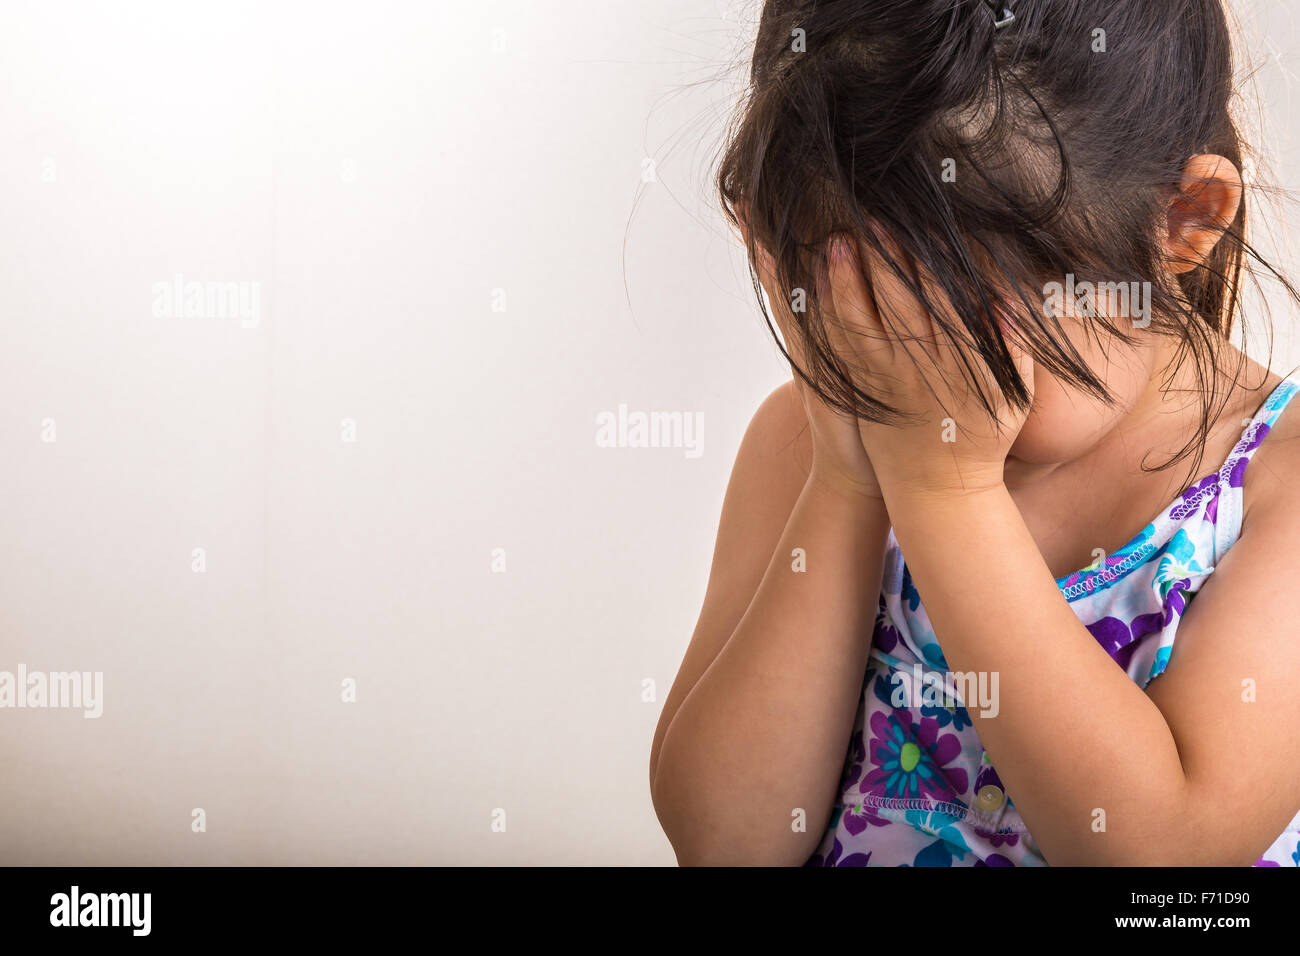 Little girl is playing hind-and-seek by covering her face with hands. - Stock Image